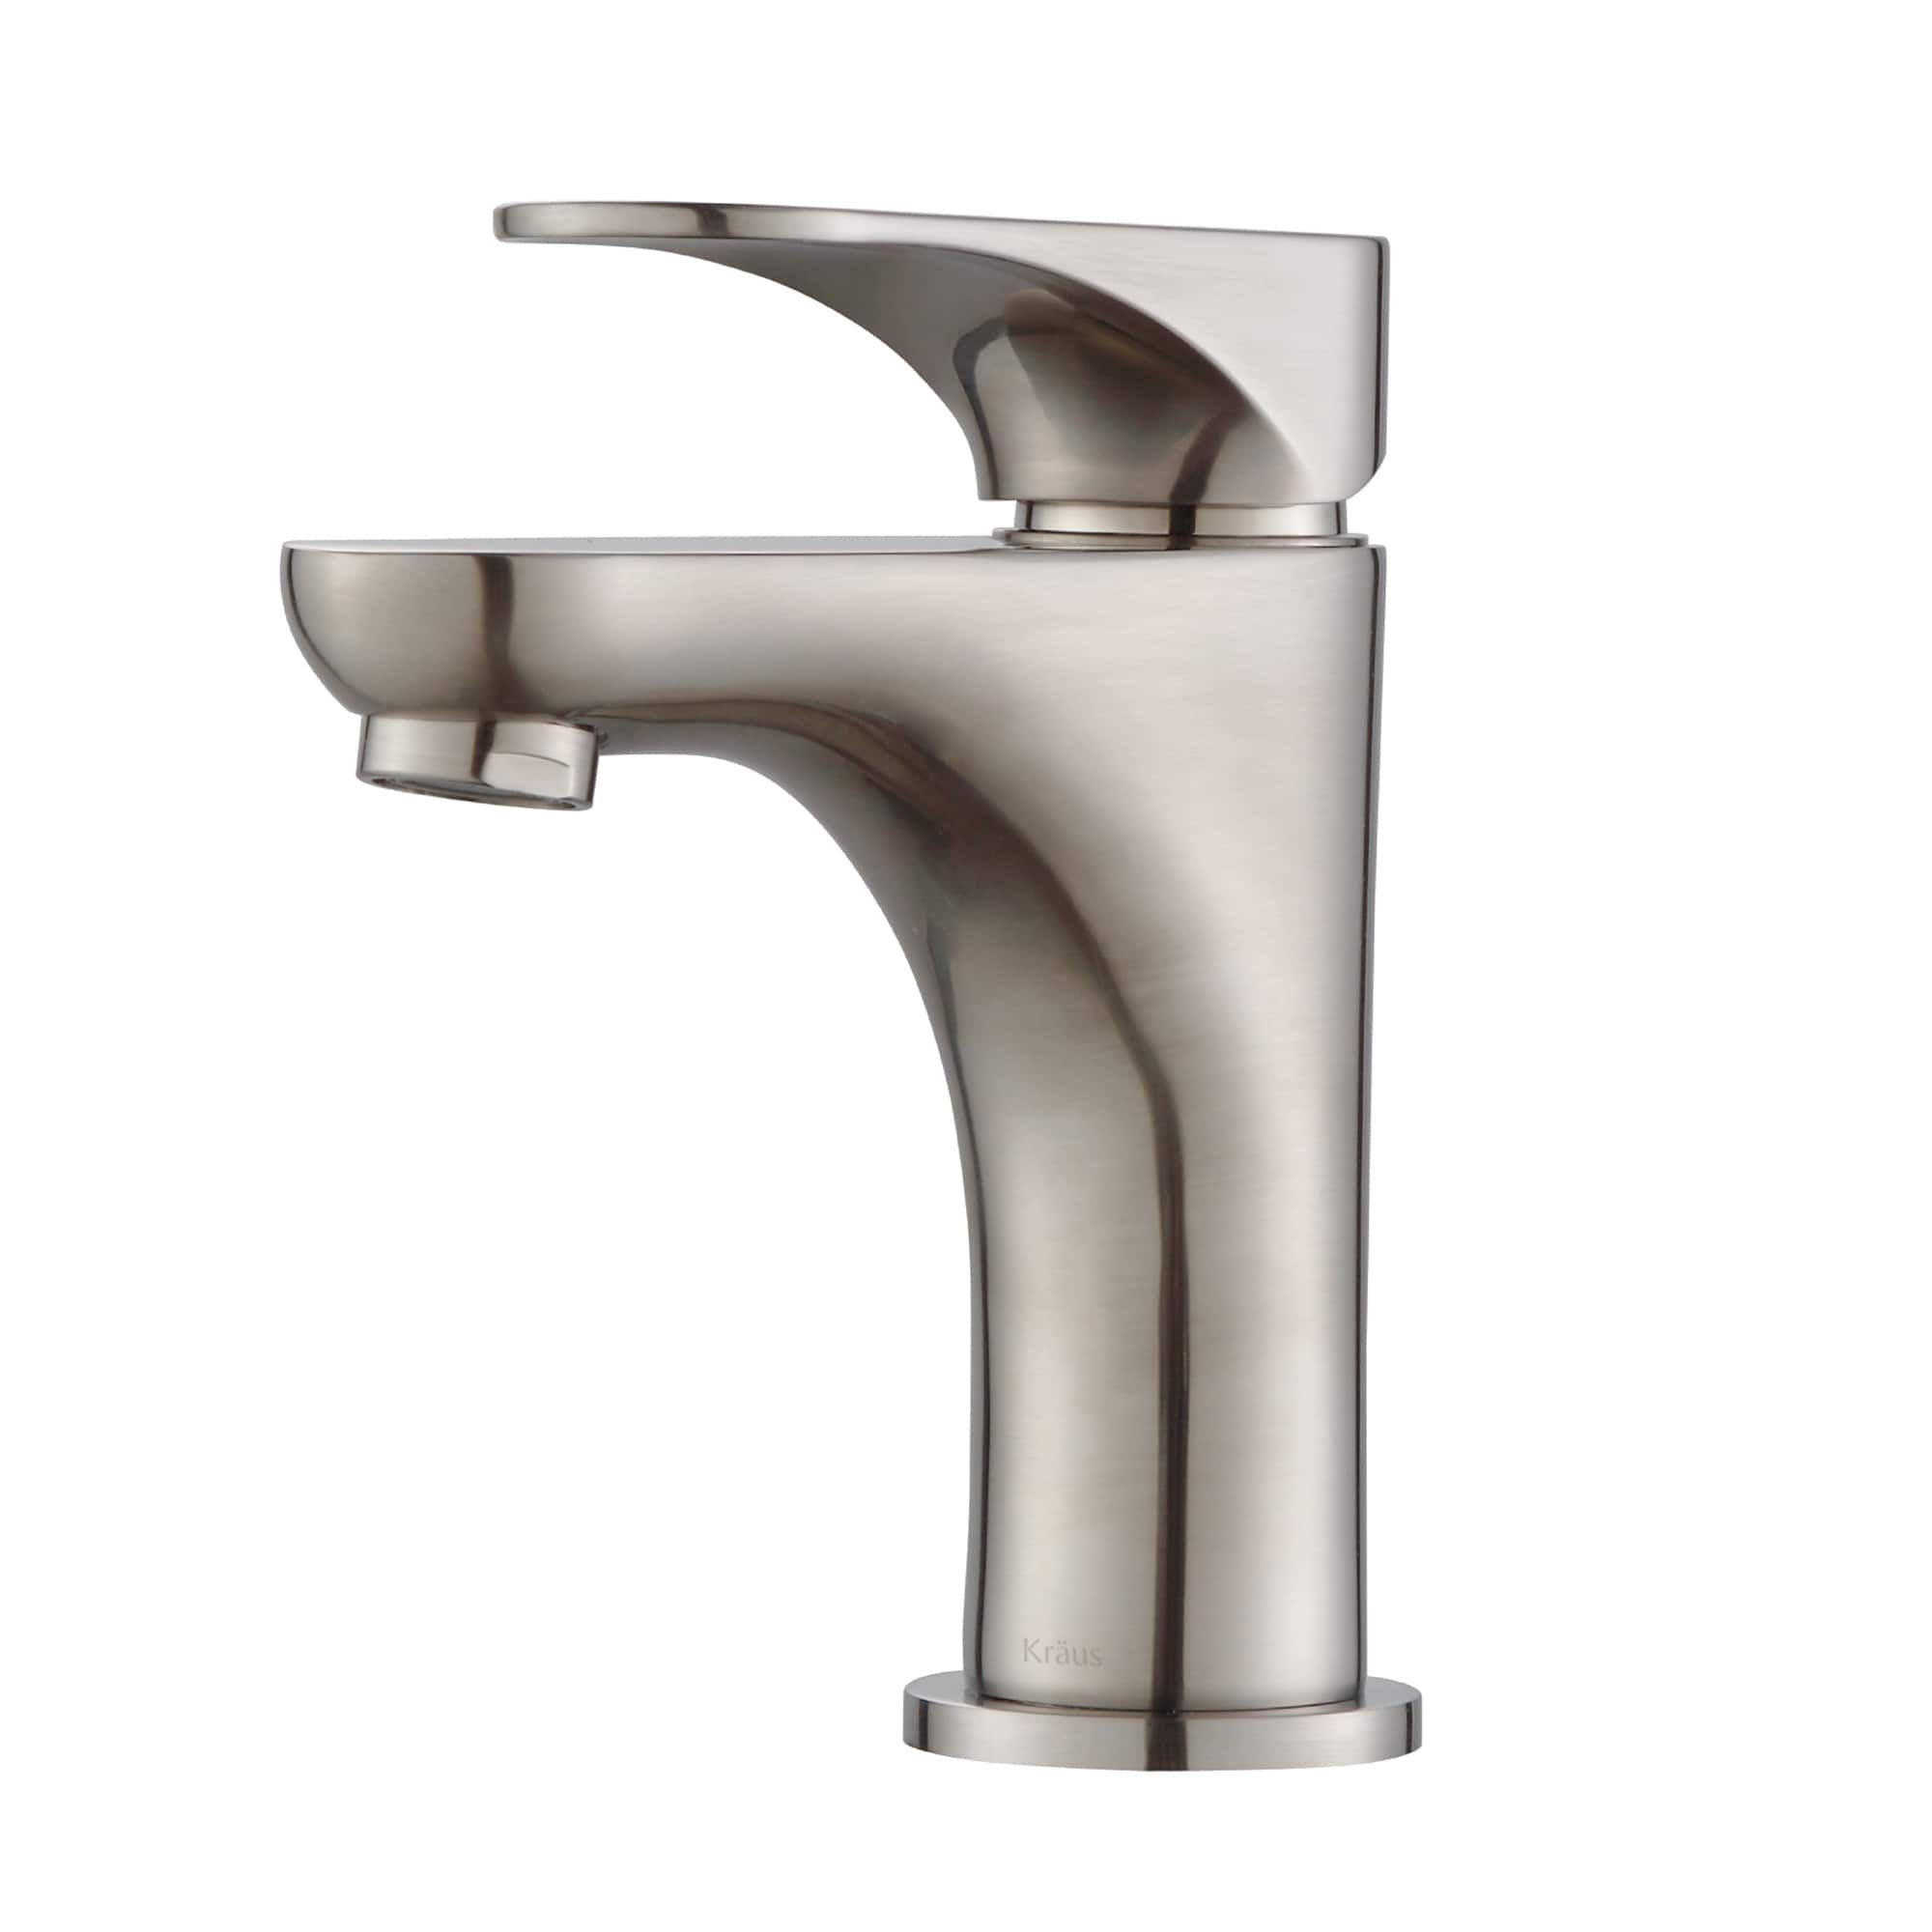 with elegance f bosconi any functionality add handle single product faucet a hole modern of to bathroom touch faucets will and